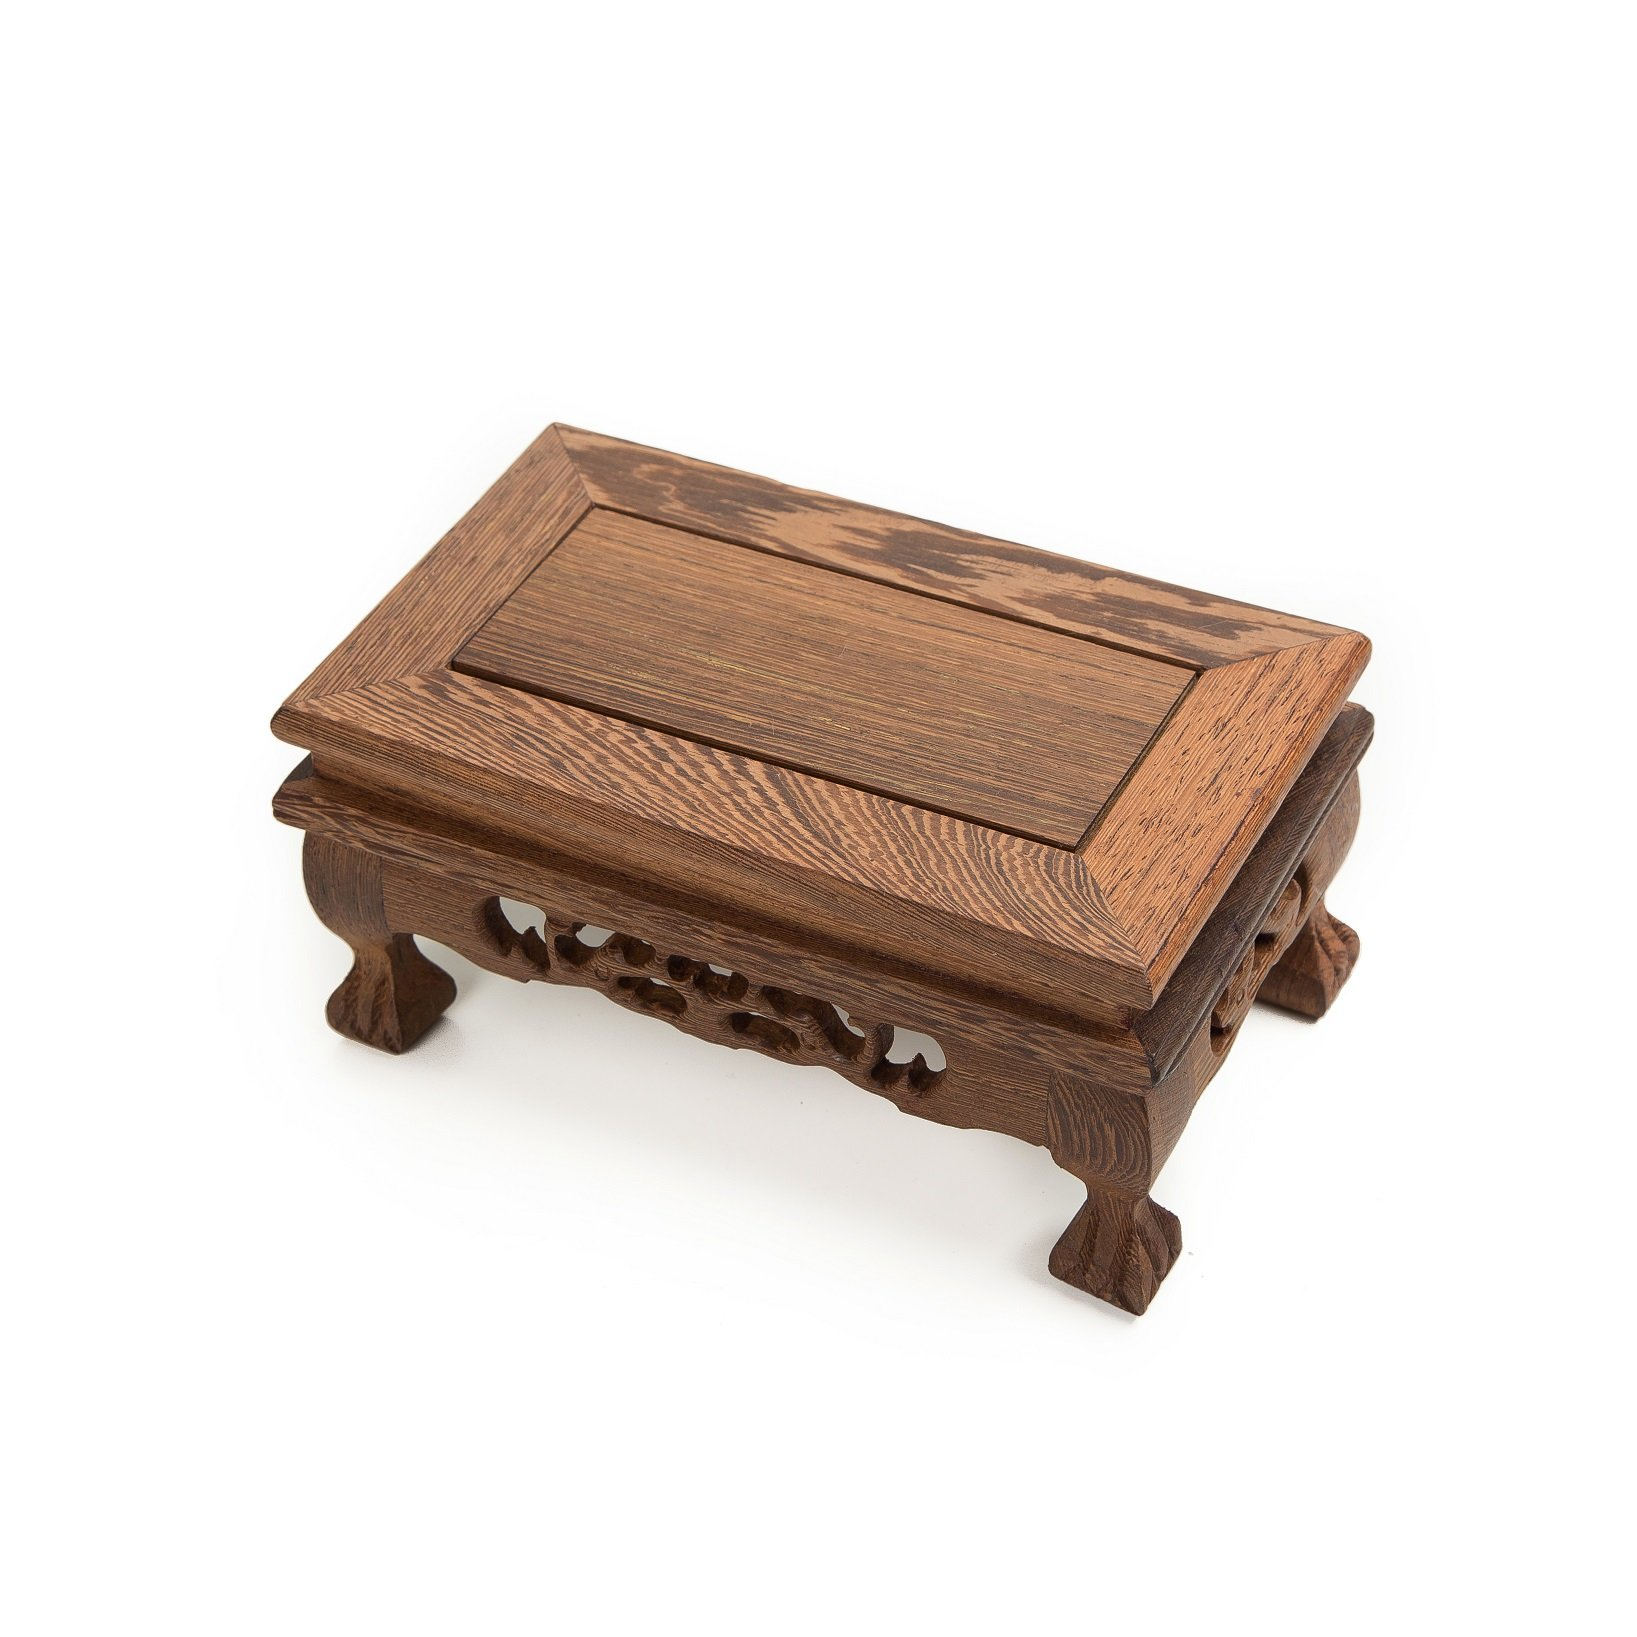 LuoLuo Chinese Display Stand Wooden Rectangle Shape Tiger Feet Carved Solid Rosewood JiChi Wood Display Base Holder For Arts Antique Etc, Home Decoration (S 18.5cm11cm9cm) by LuoLuo (Image #1)